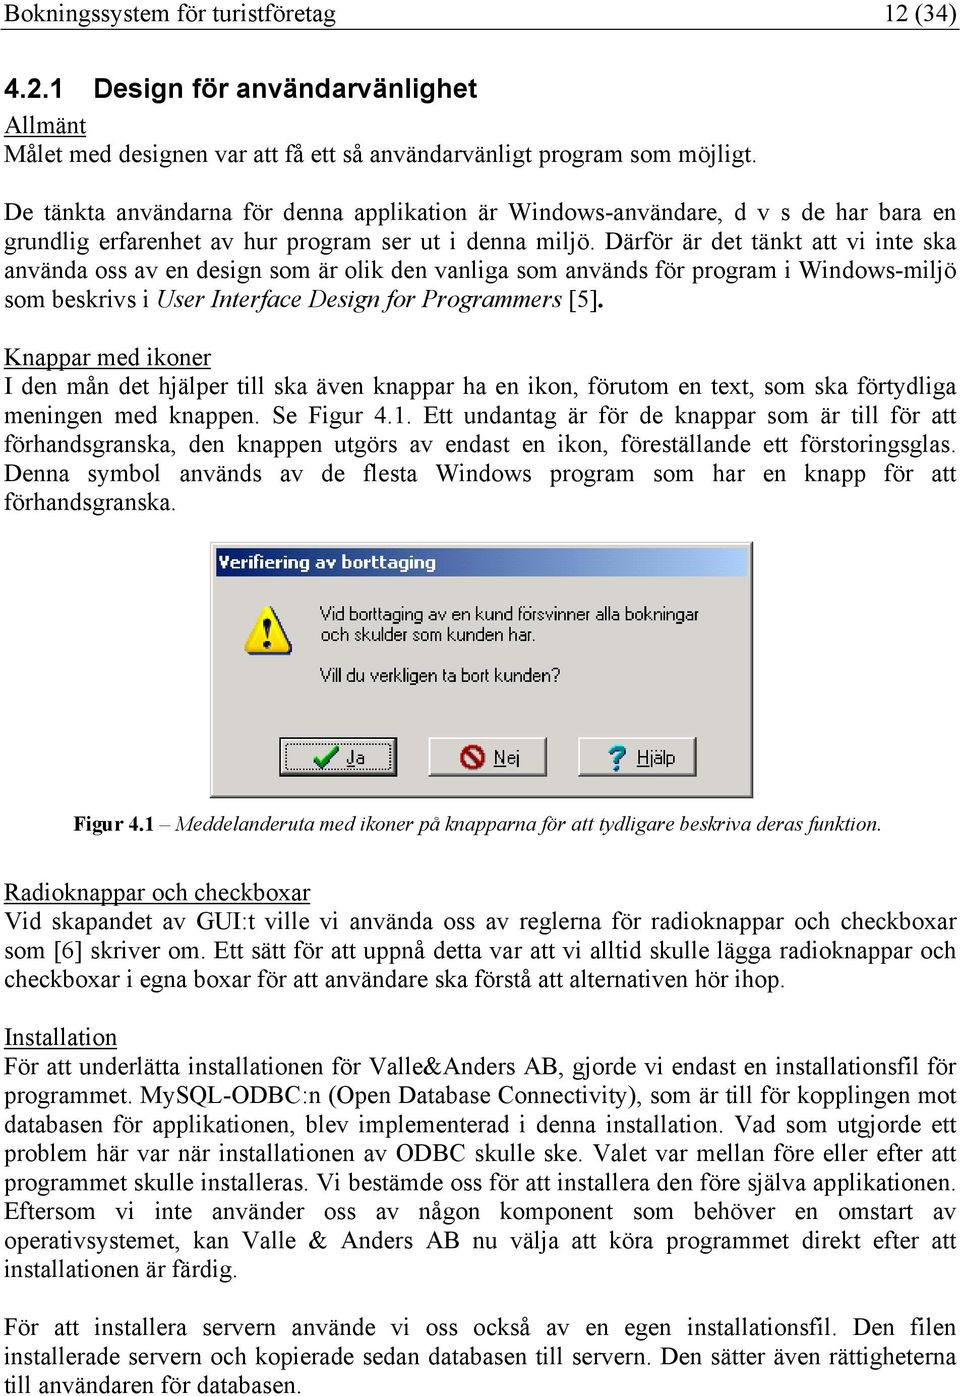 Därför är det tänkt att vi inte ska använda oss av en design som är olik den vanliga som används för program i Windows-miljö som beskrivs i User Interface Design for Programmers [5].